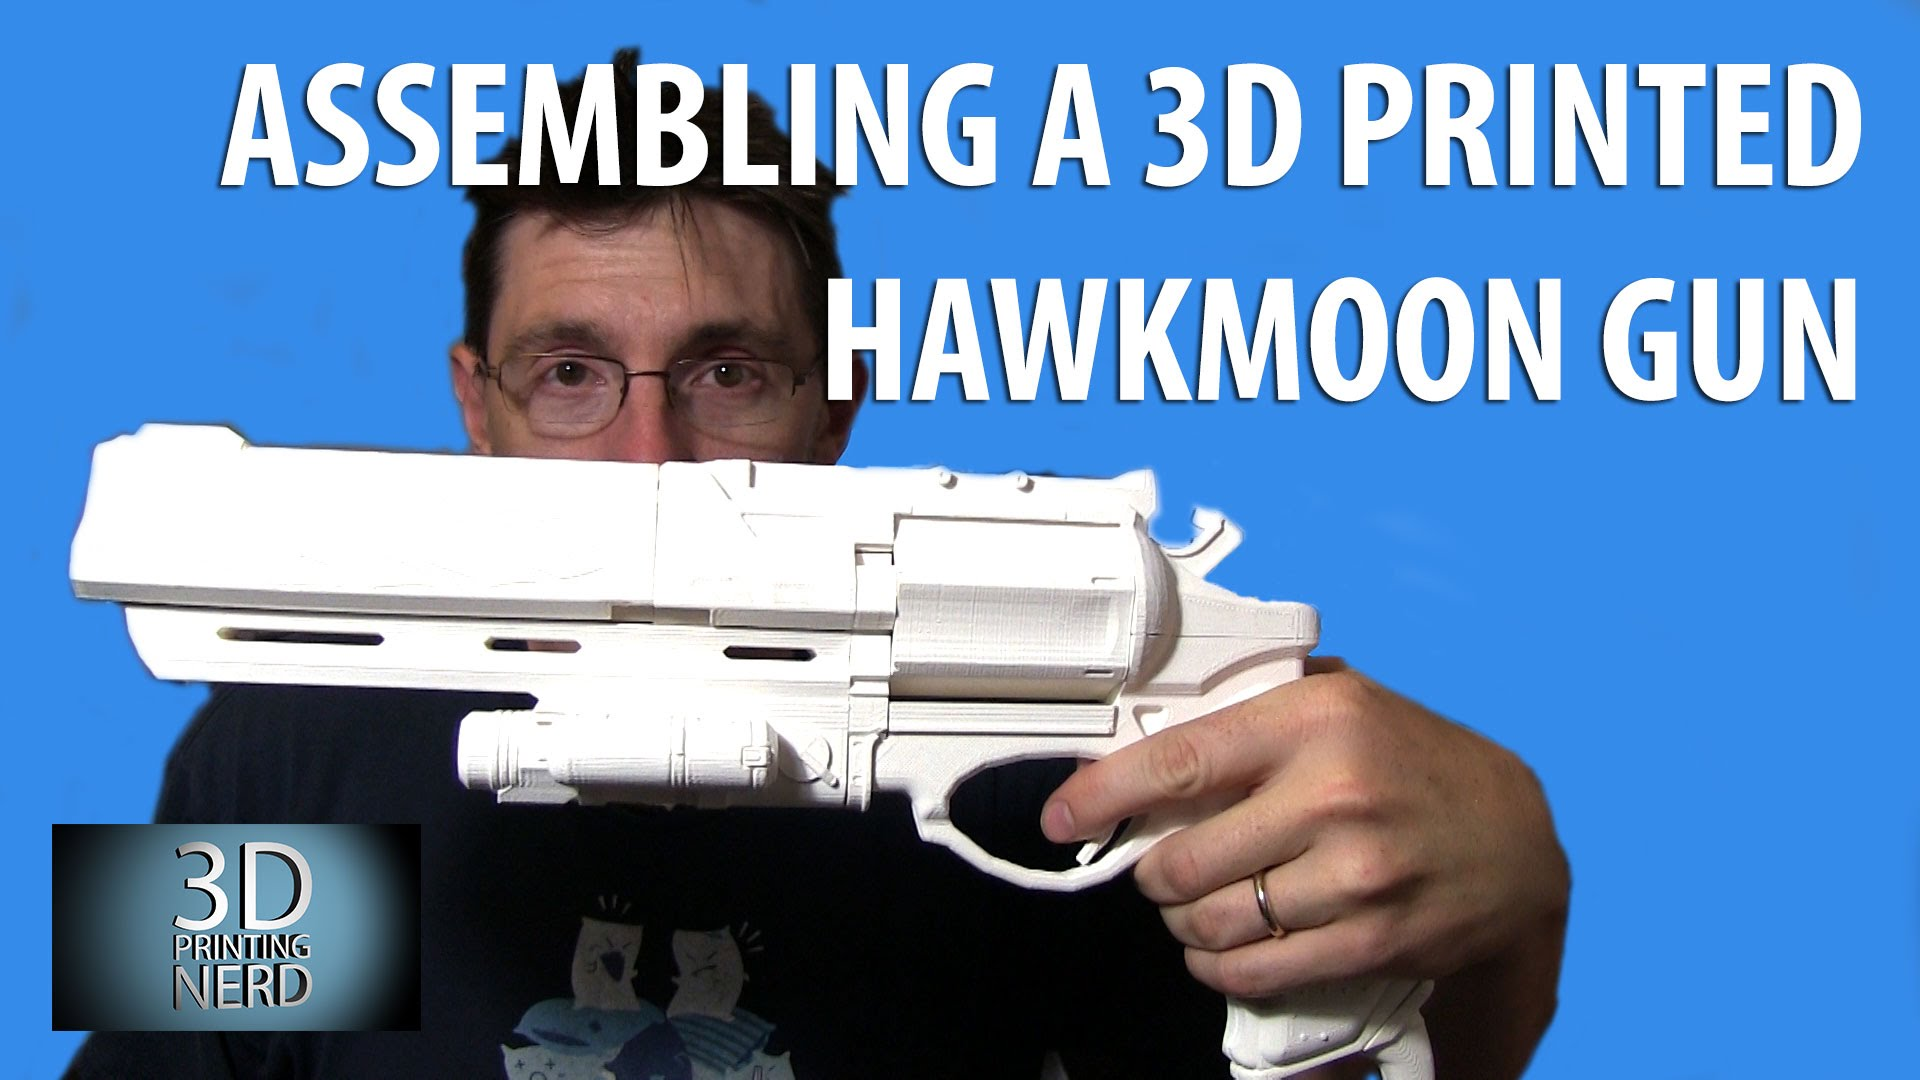 3D Printing the Hawkmoon from Destiny and Gluing it Together